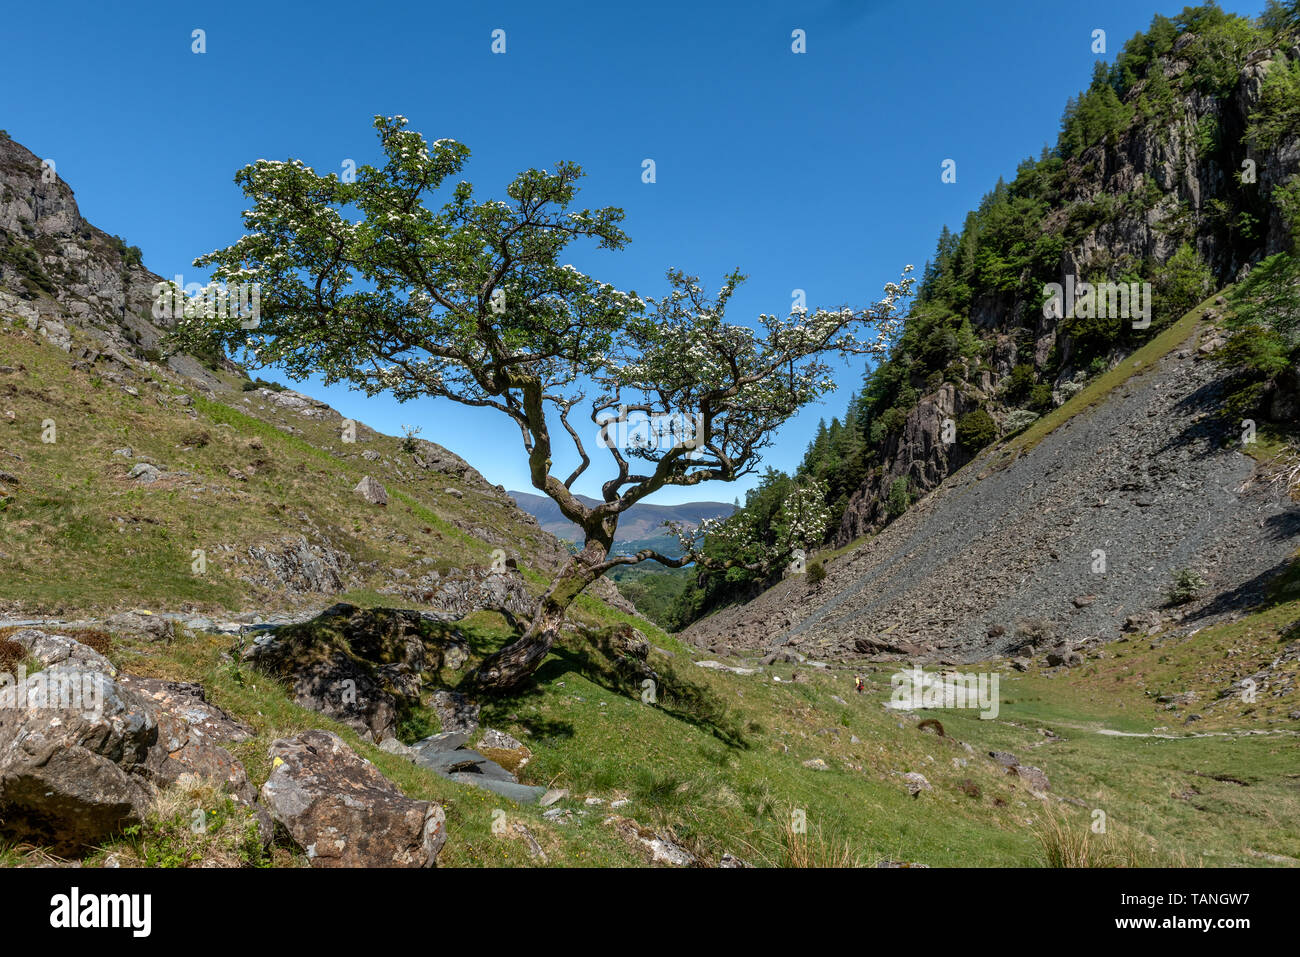 Along the Allerdale ramble in Borrowdale Cumbria - Stock Image